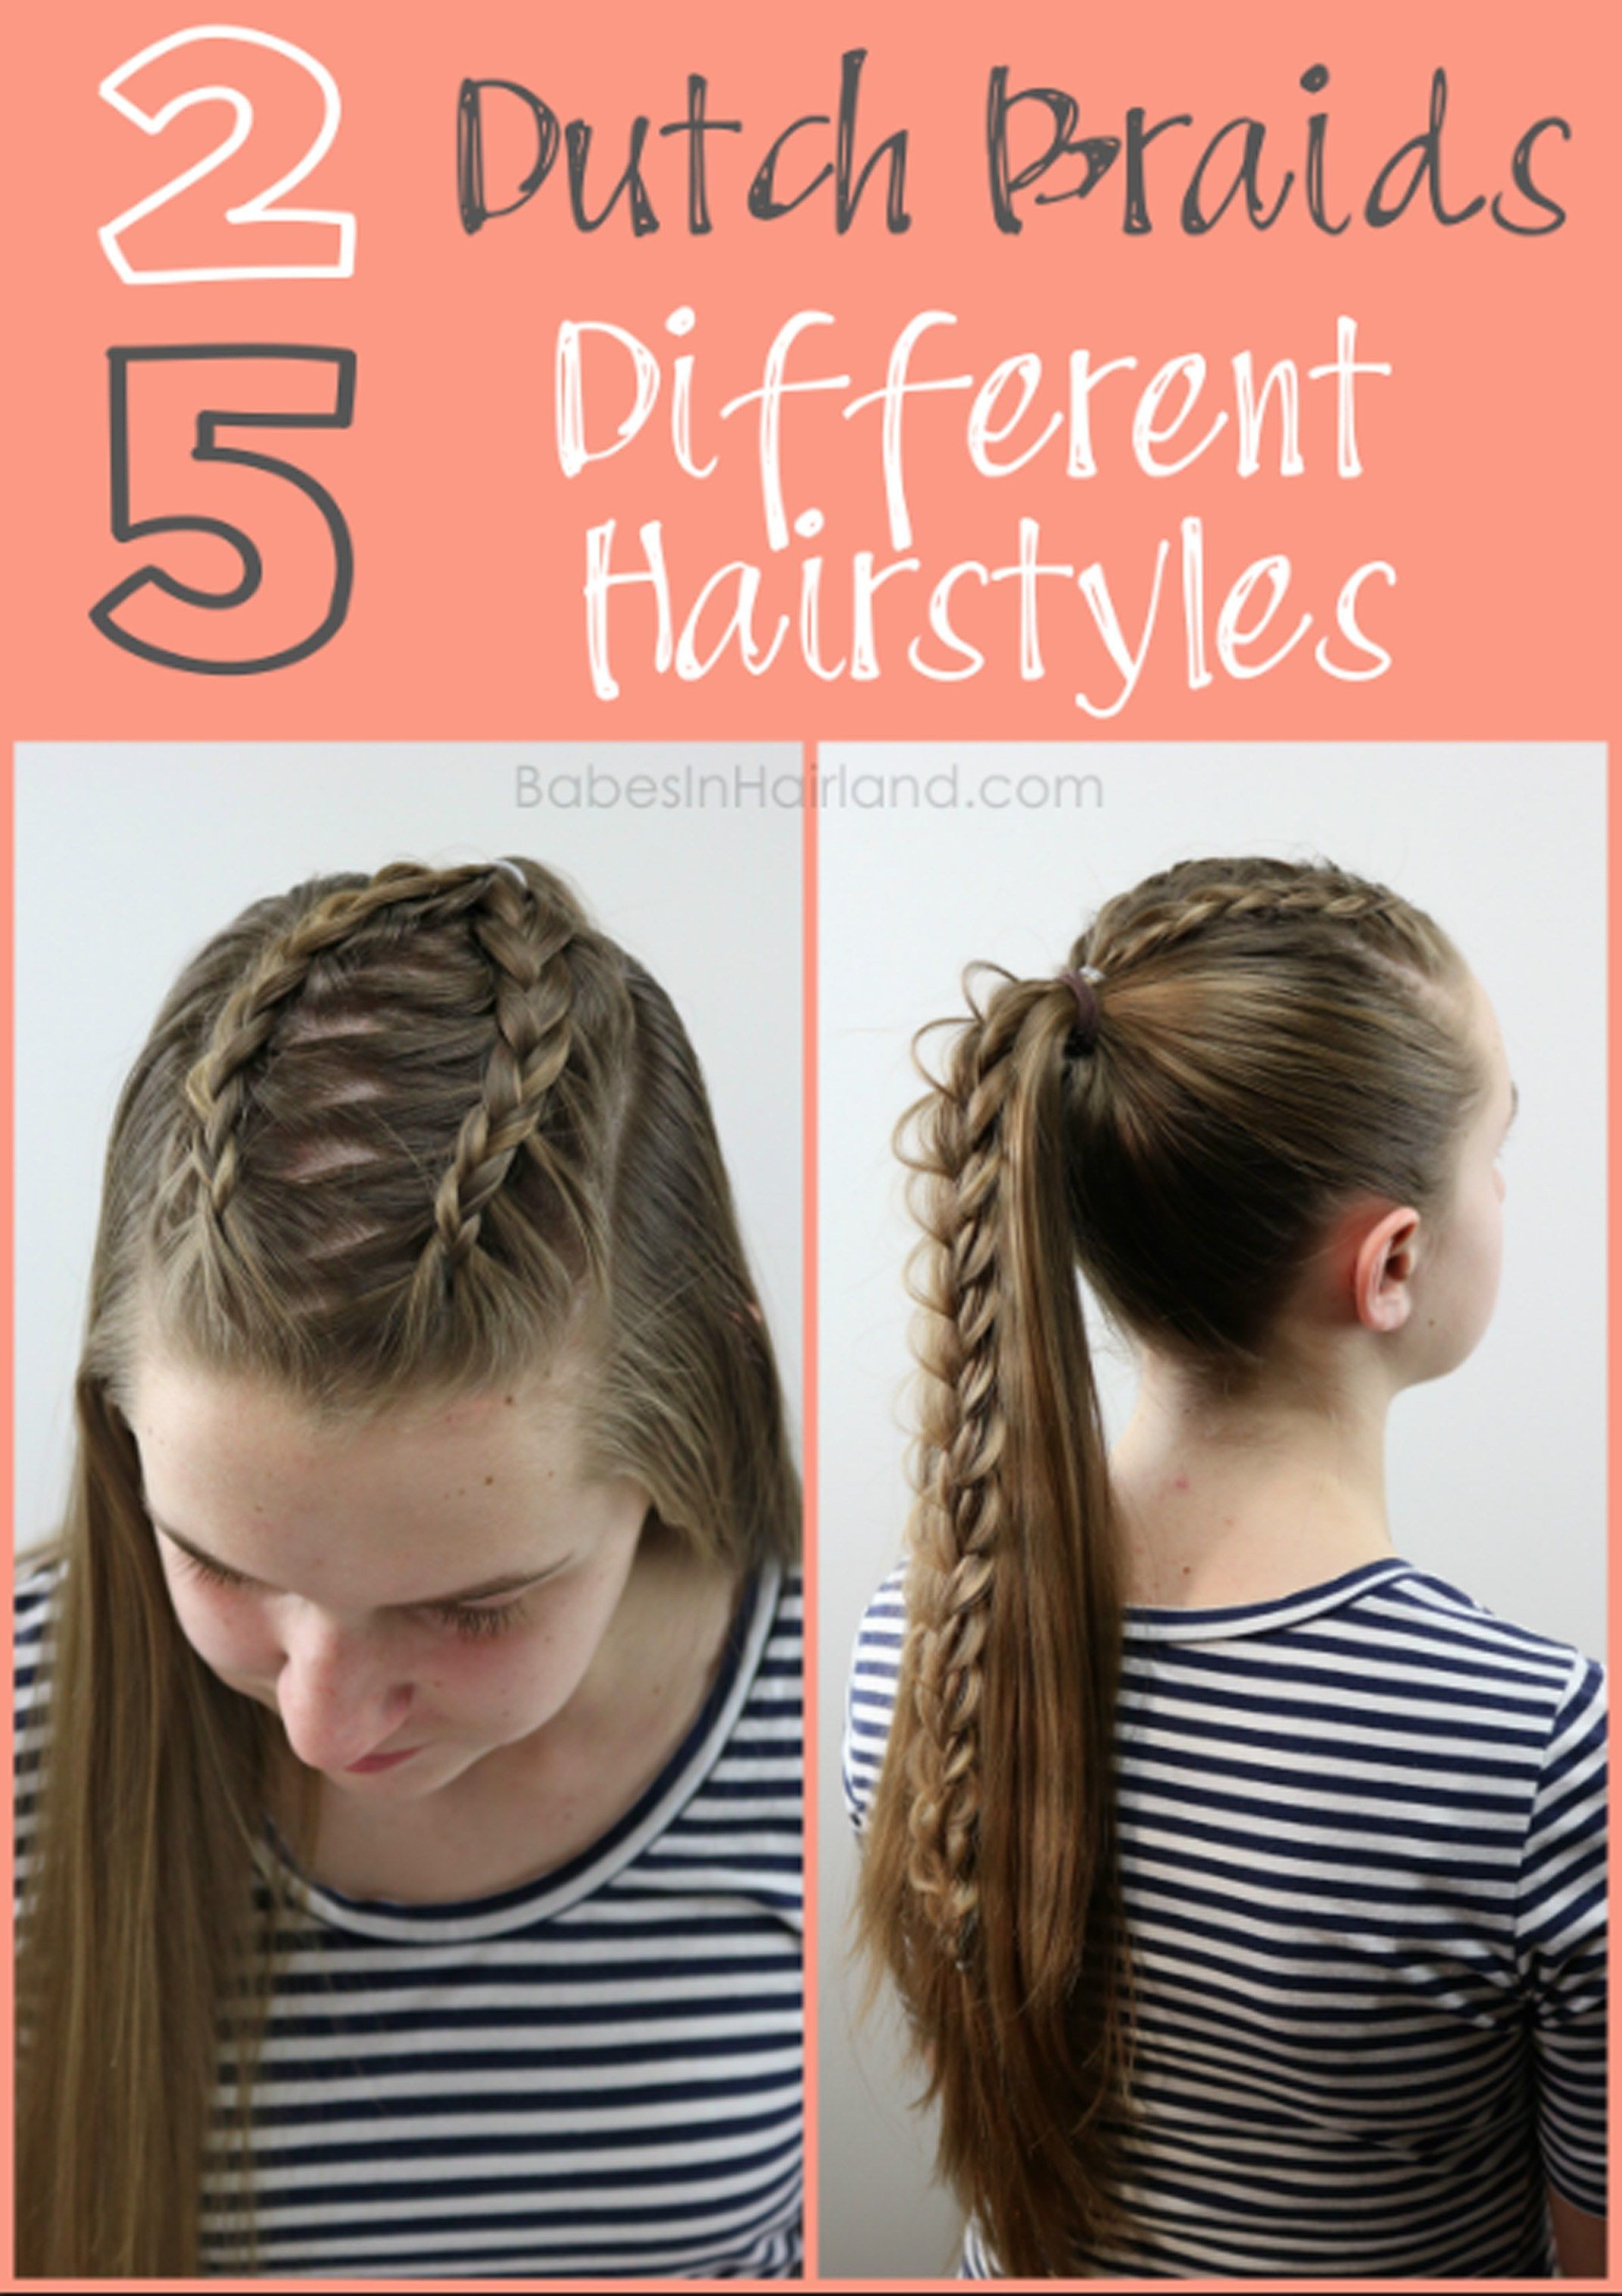 Dutch Braids Different Hairstyles Braided ponytail Dutch